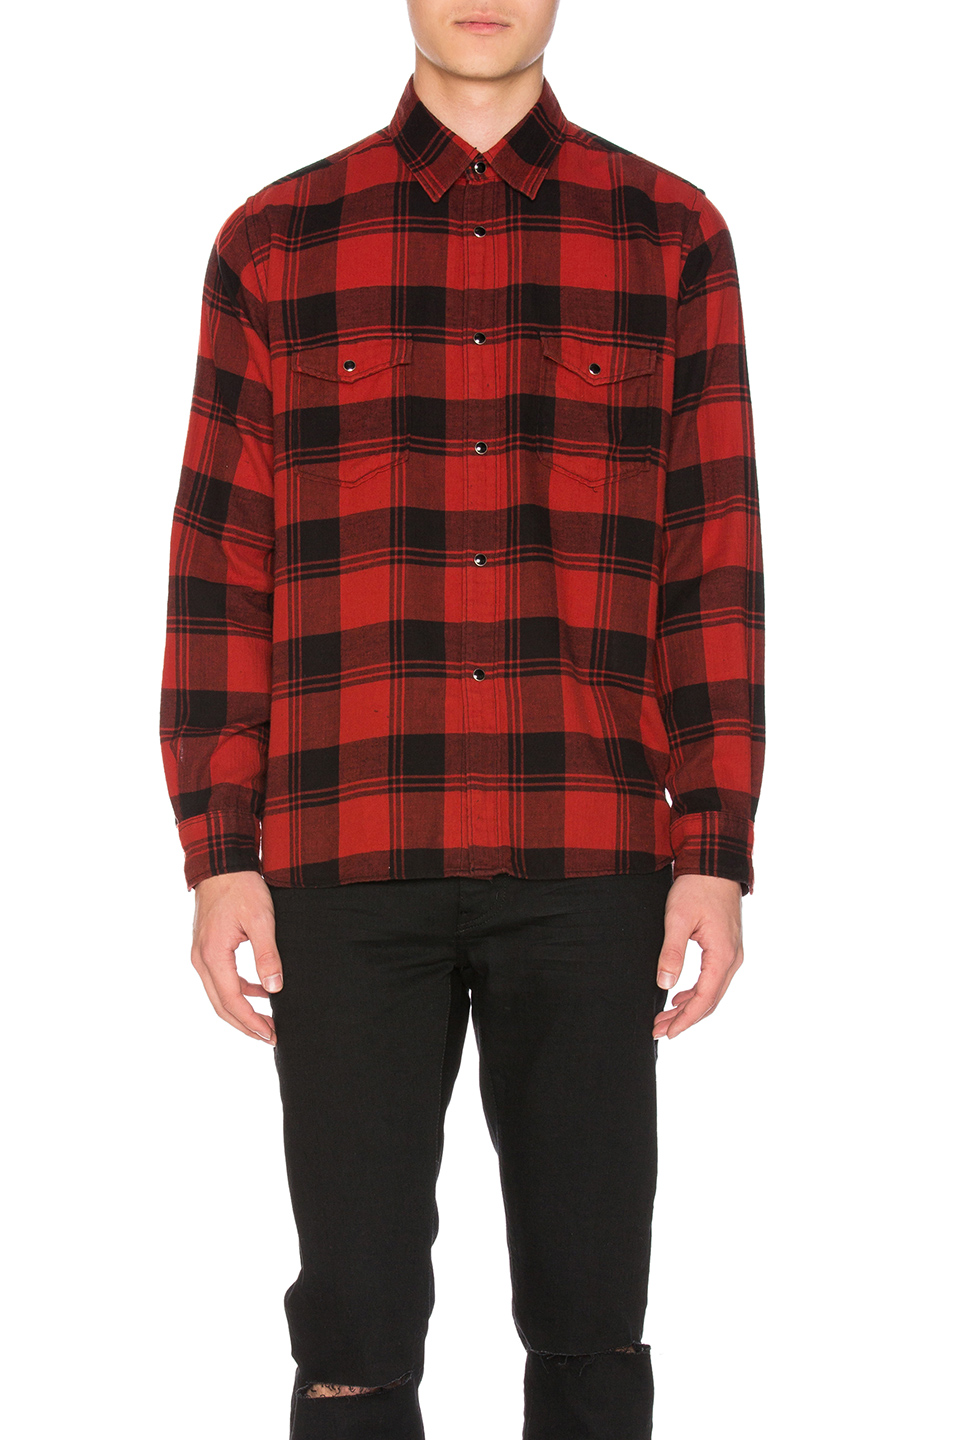 Saint laurent oversized shirt in black and red plaid for Oversized red plaid shirt